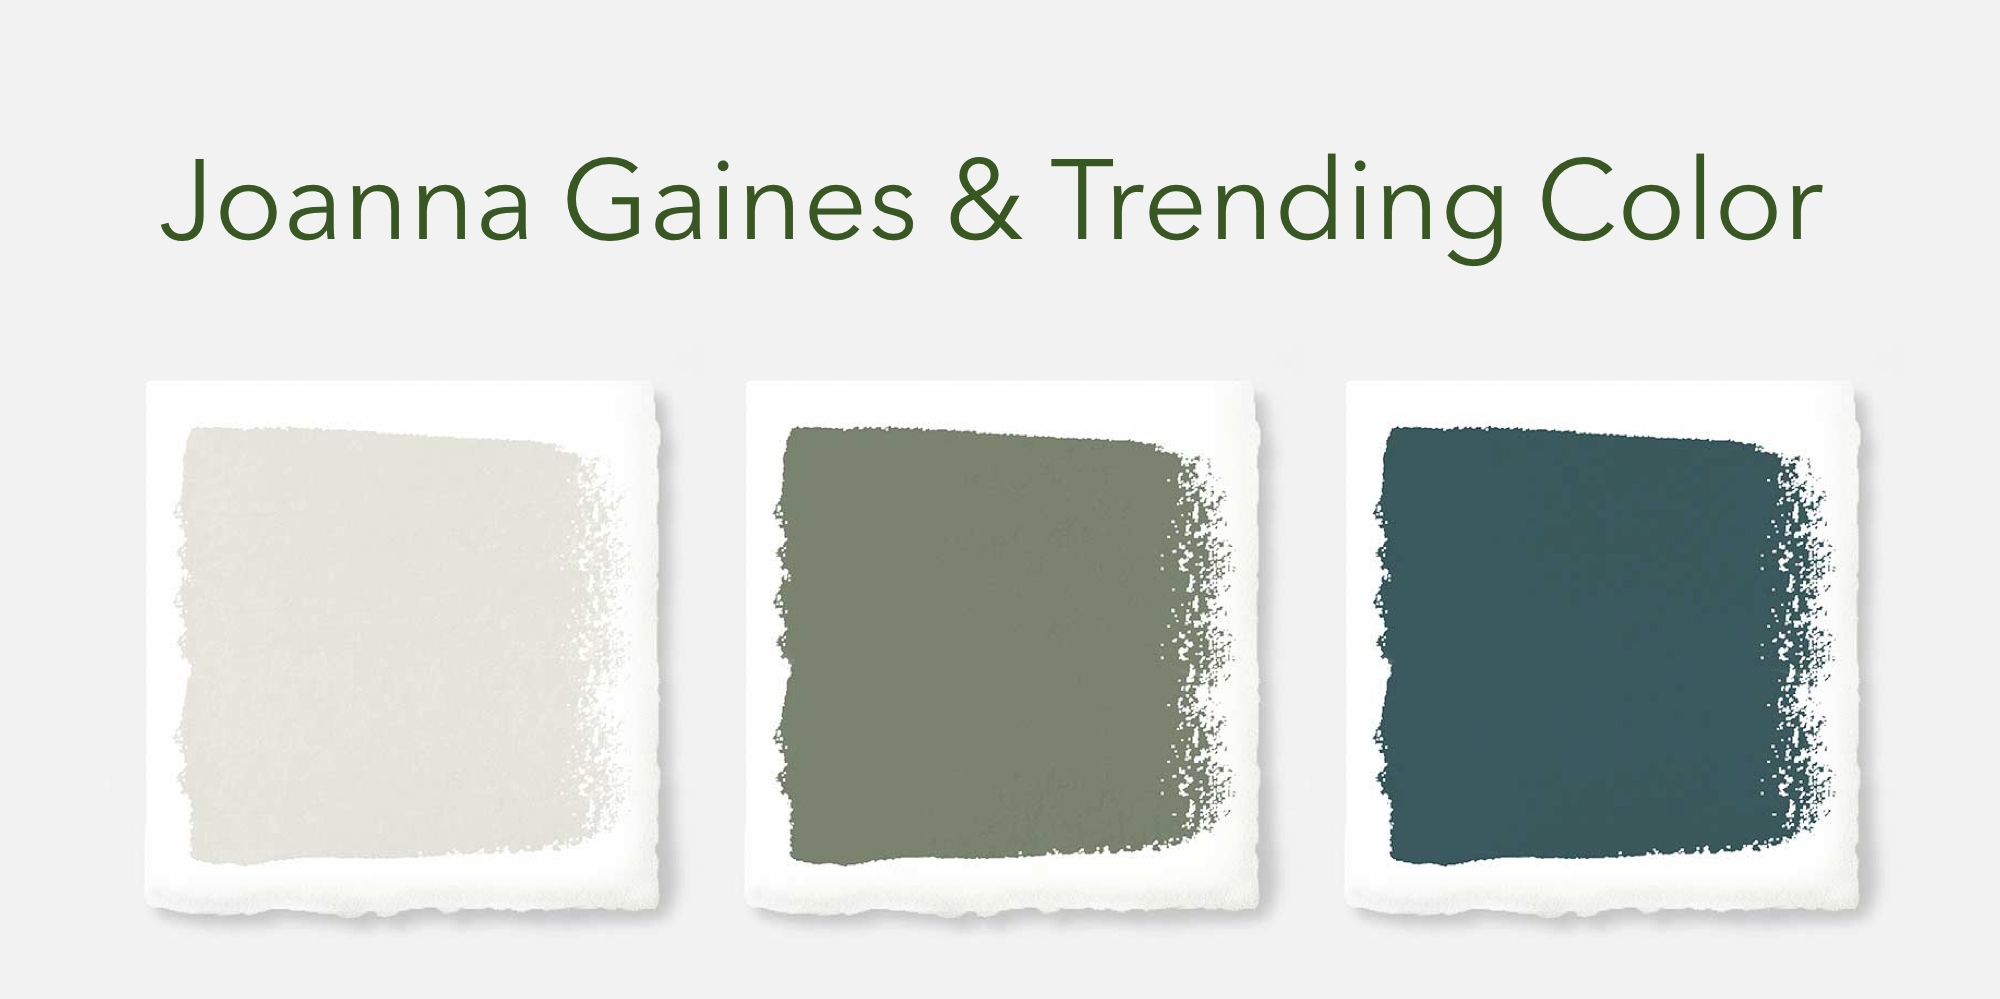 Joanna Gaines & Trending Color